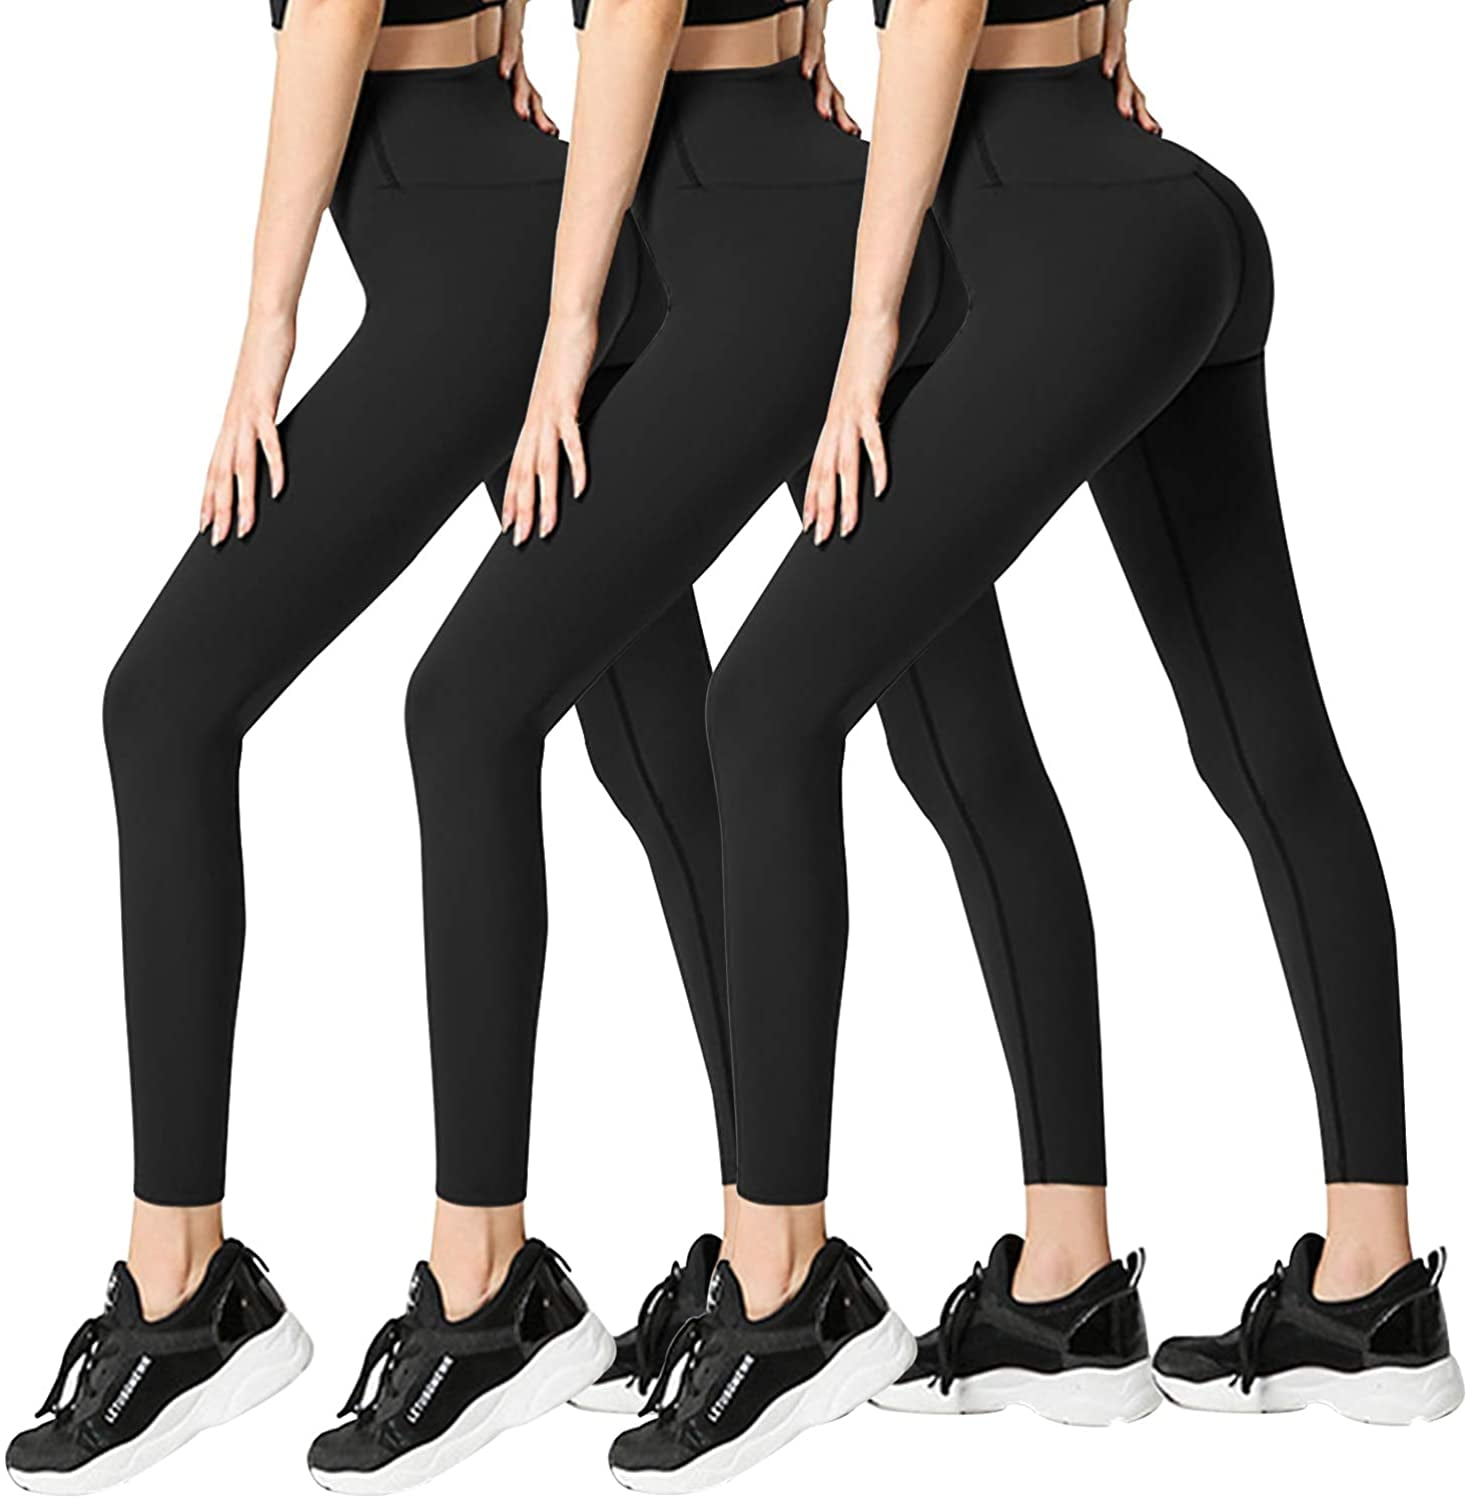 These Are The Top Rated Leggings On Amazon 2020 Popsugar Fitness